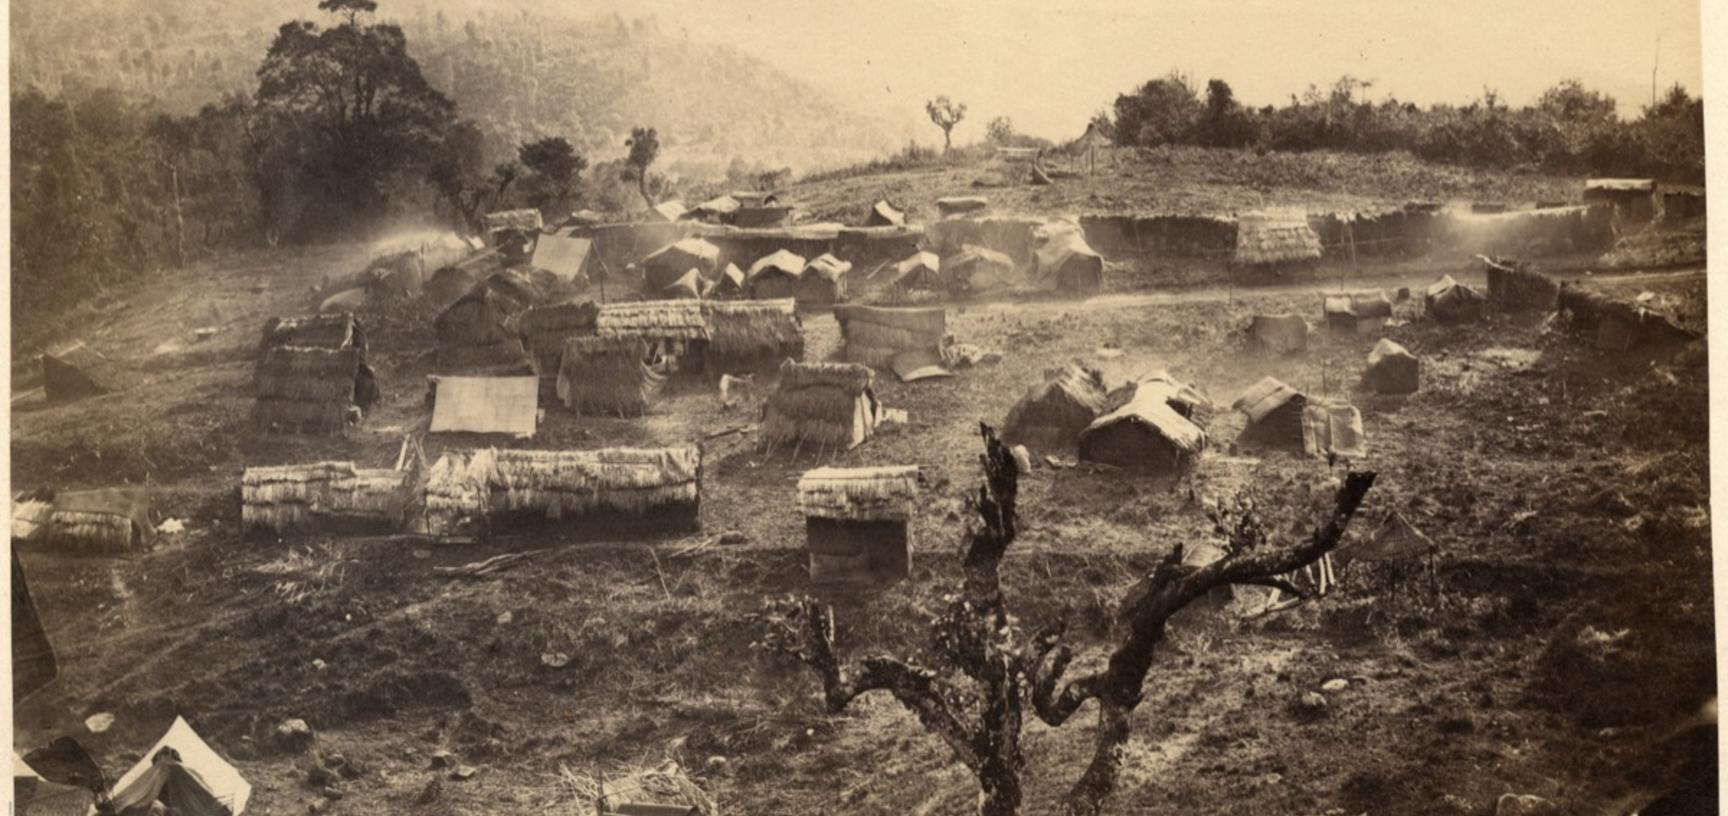 View of an unidentified Naga settlement on a hillside. Photographer unknown. Naga Hills District of Assam (now in Nagaland), India. 1873–1874. (Copyright Pitt Rivers Museum, University of Oxford. Accession Number: 1914.5.2.62)